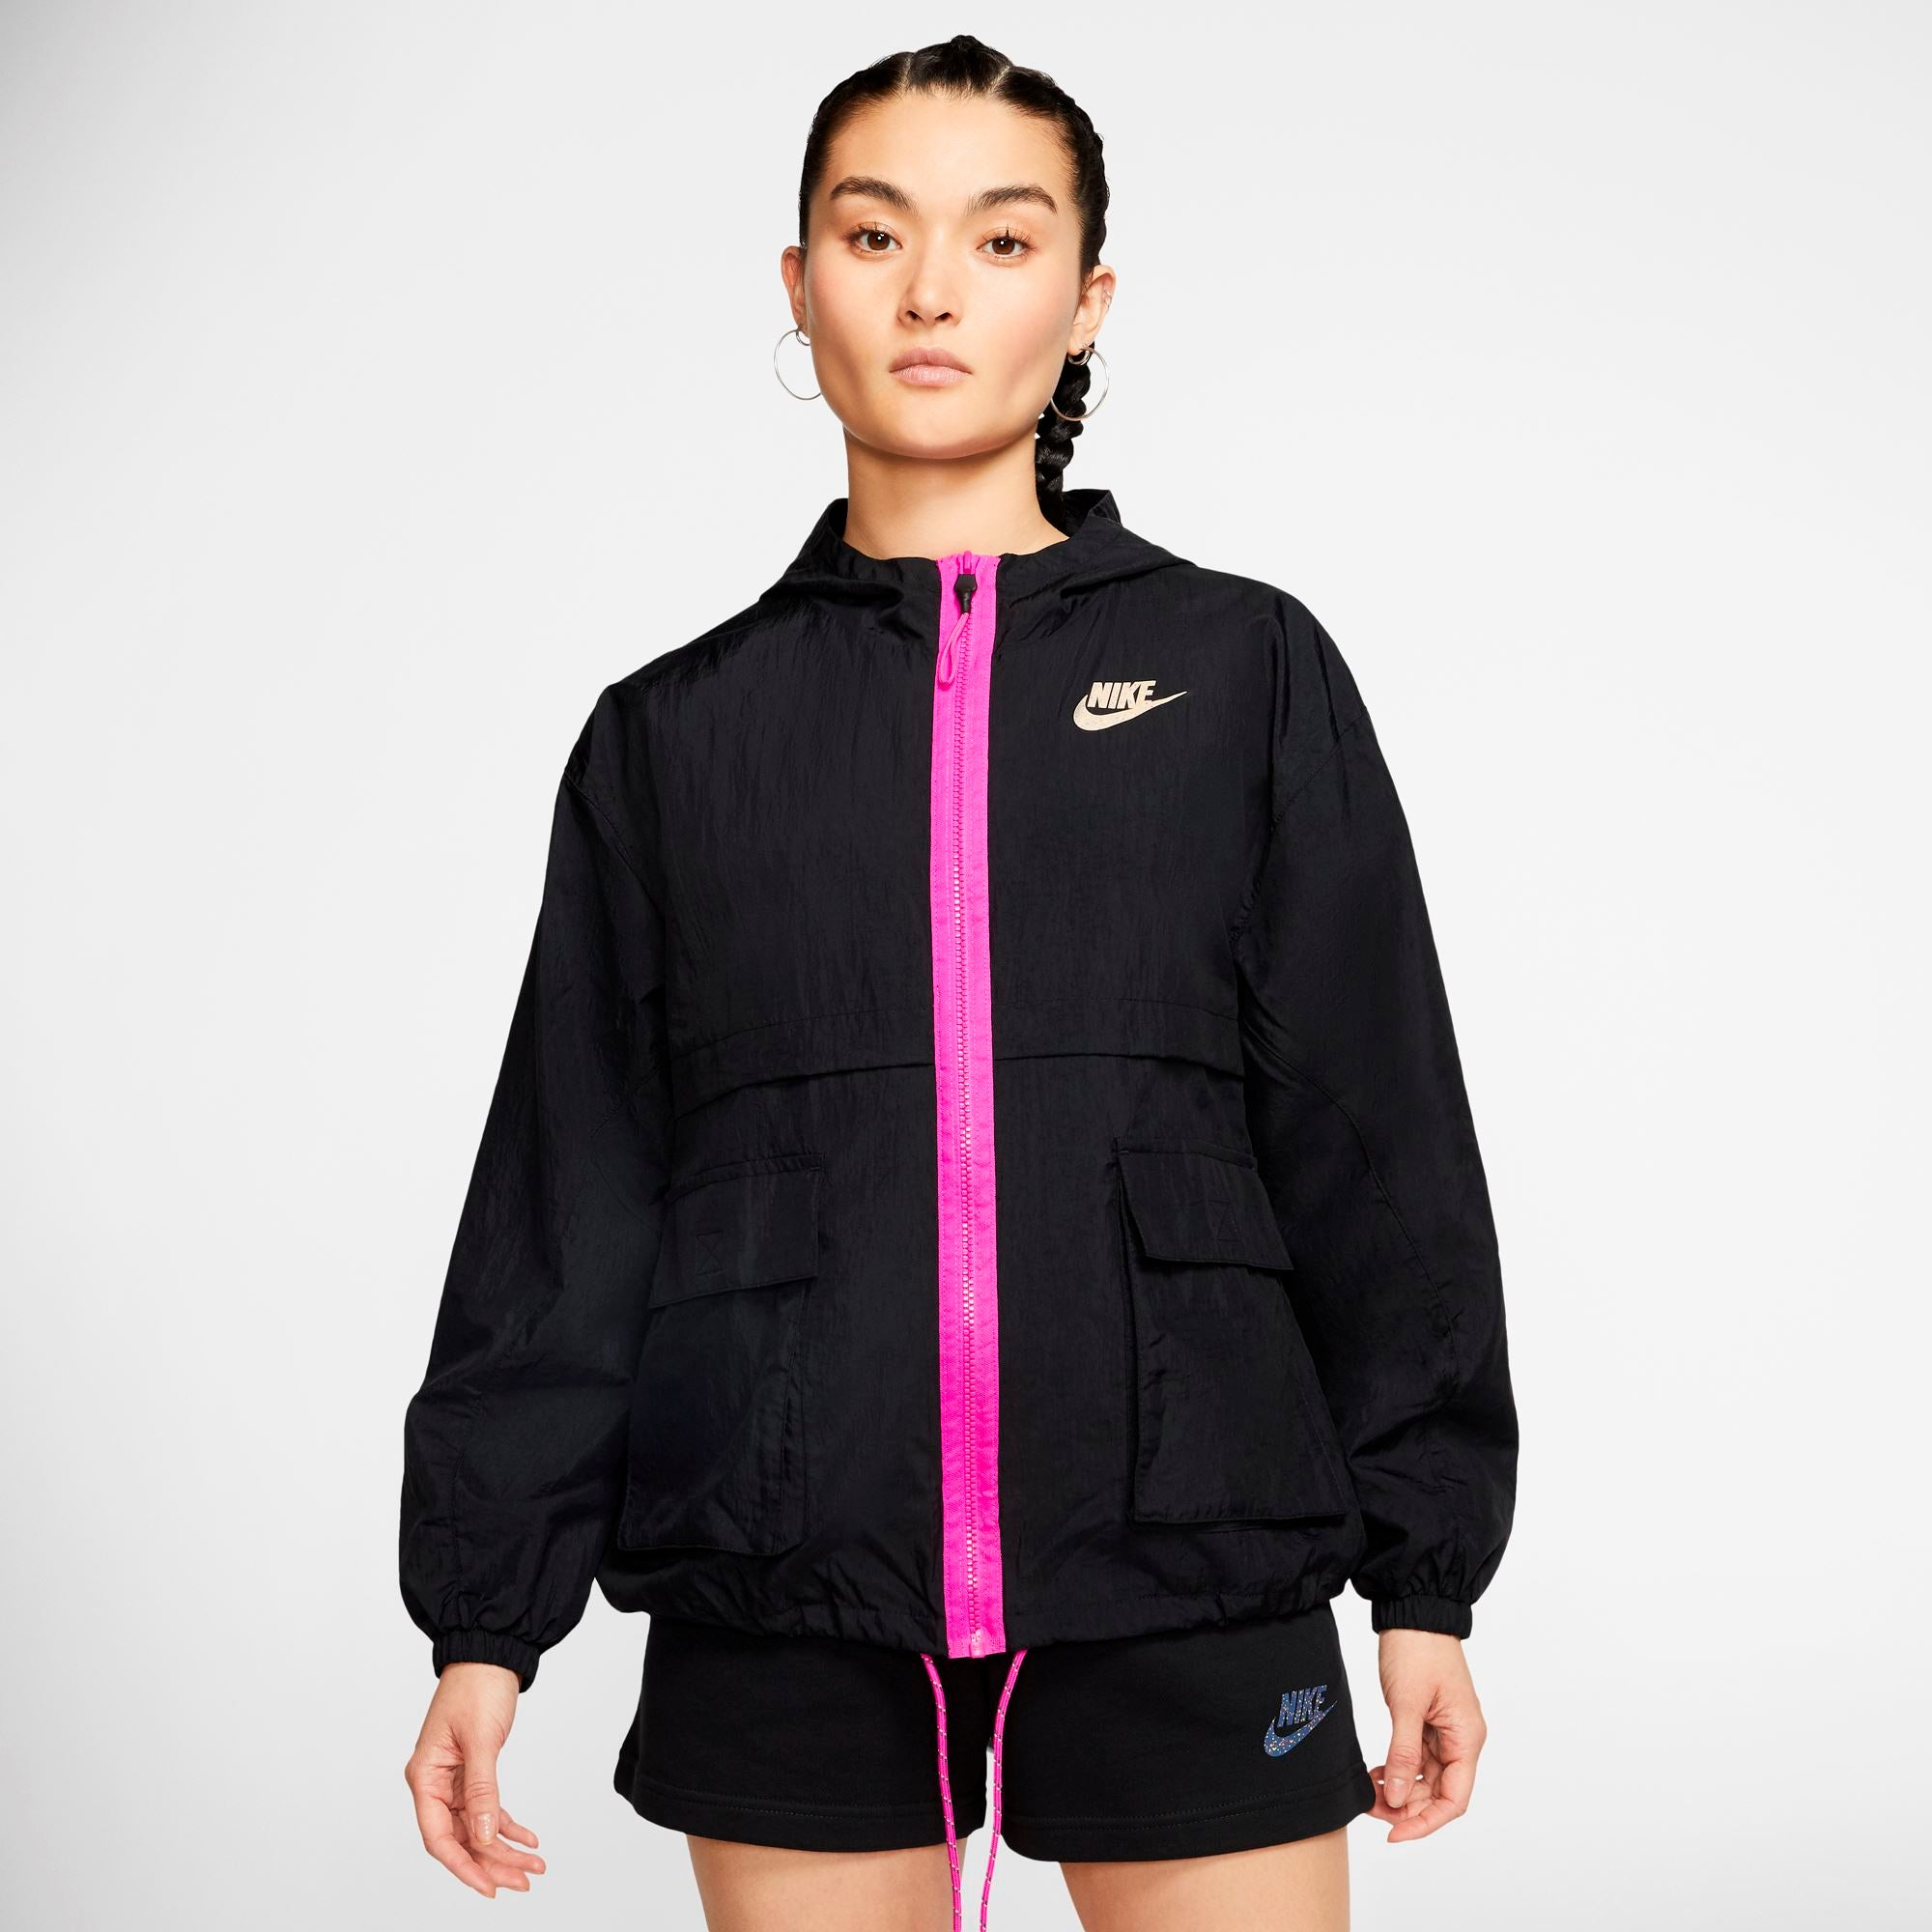 Nike Womens Icon Clash Woven Jacket - Black/Black/Fire Pink SP-ApparelJacket-Womens Nike